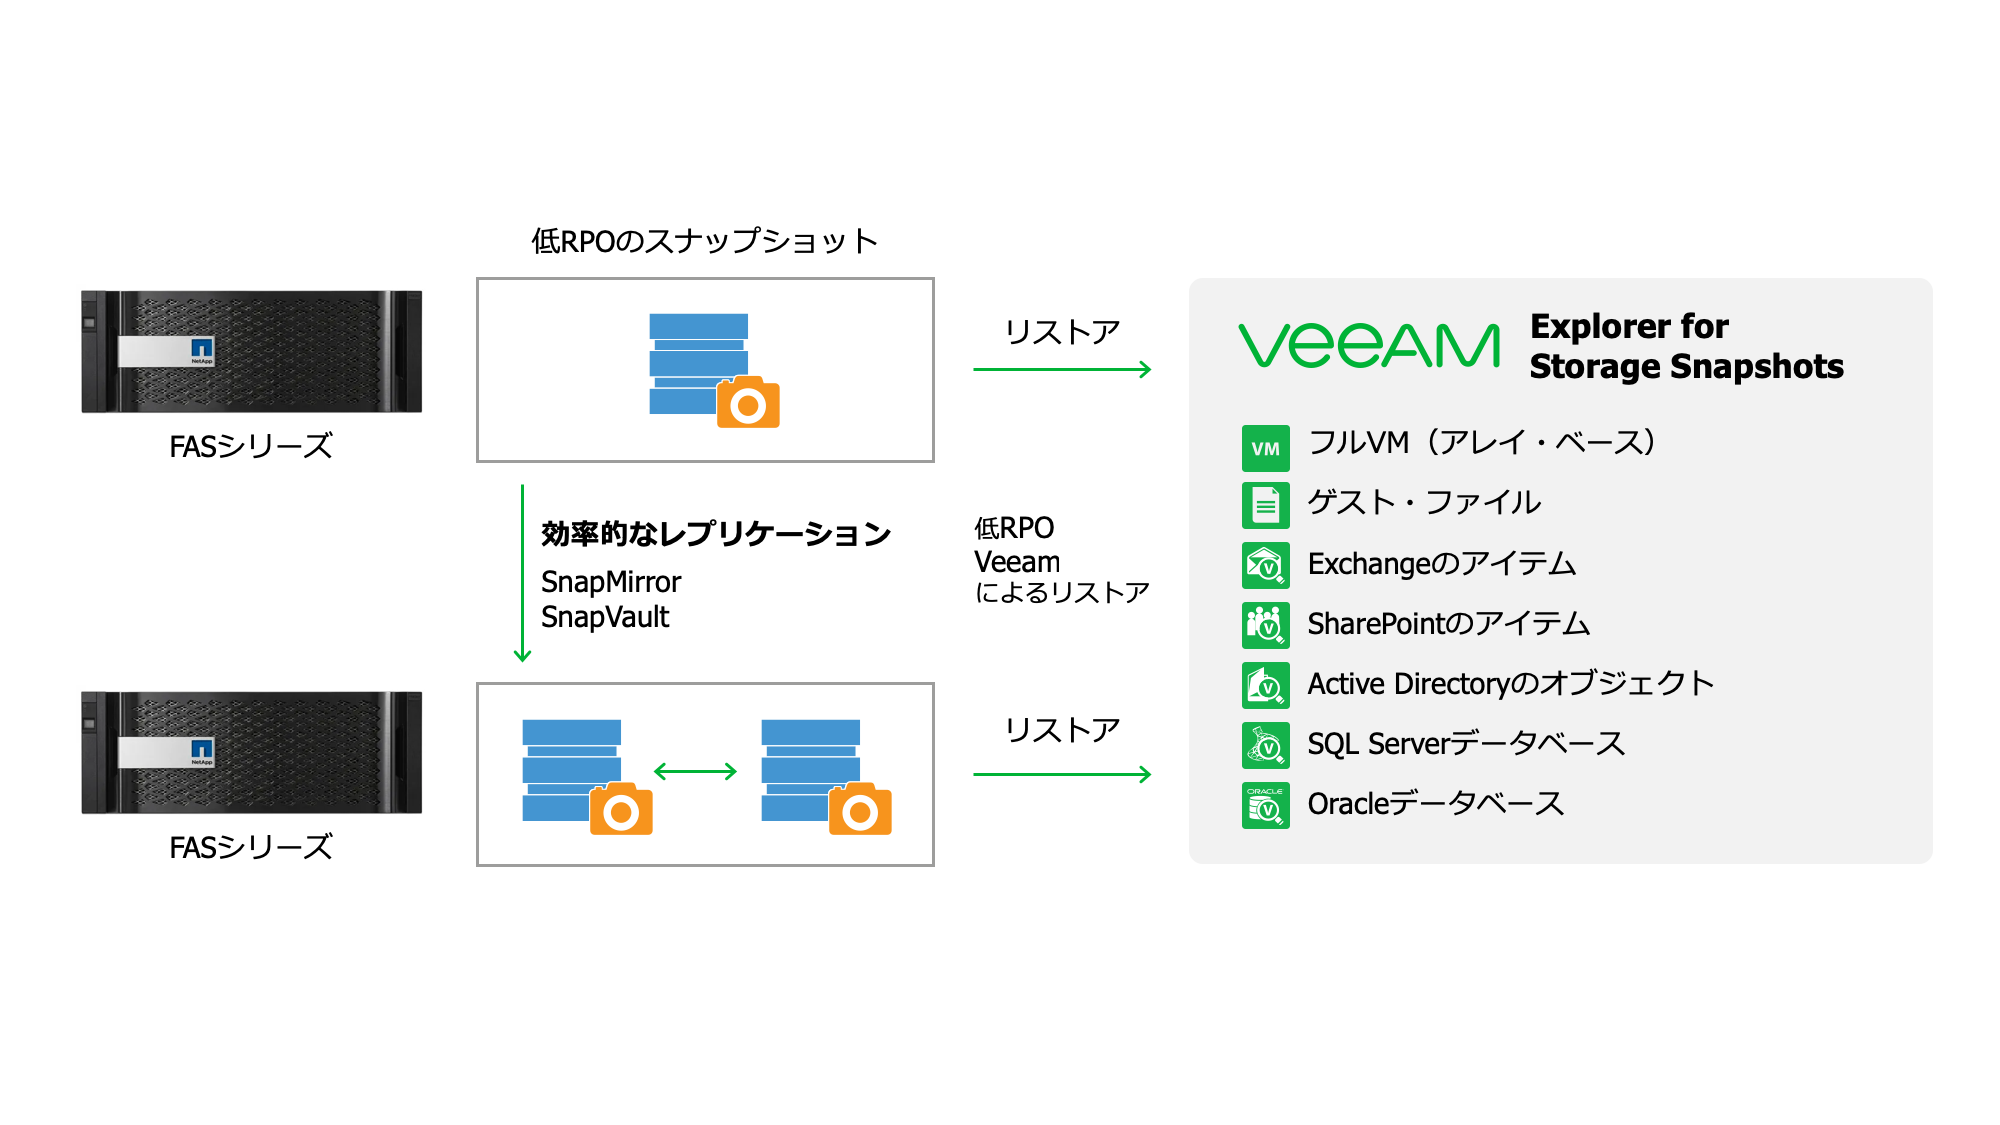 integration_with_netapp_jp.png